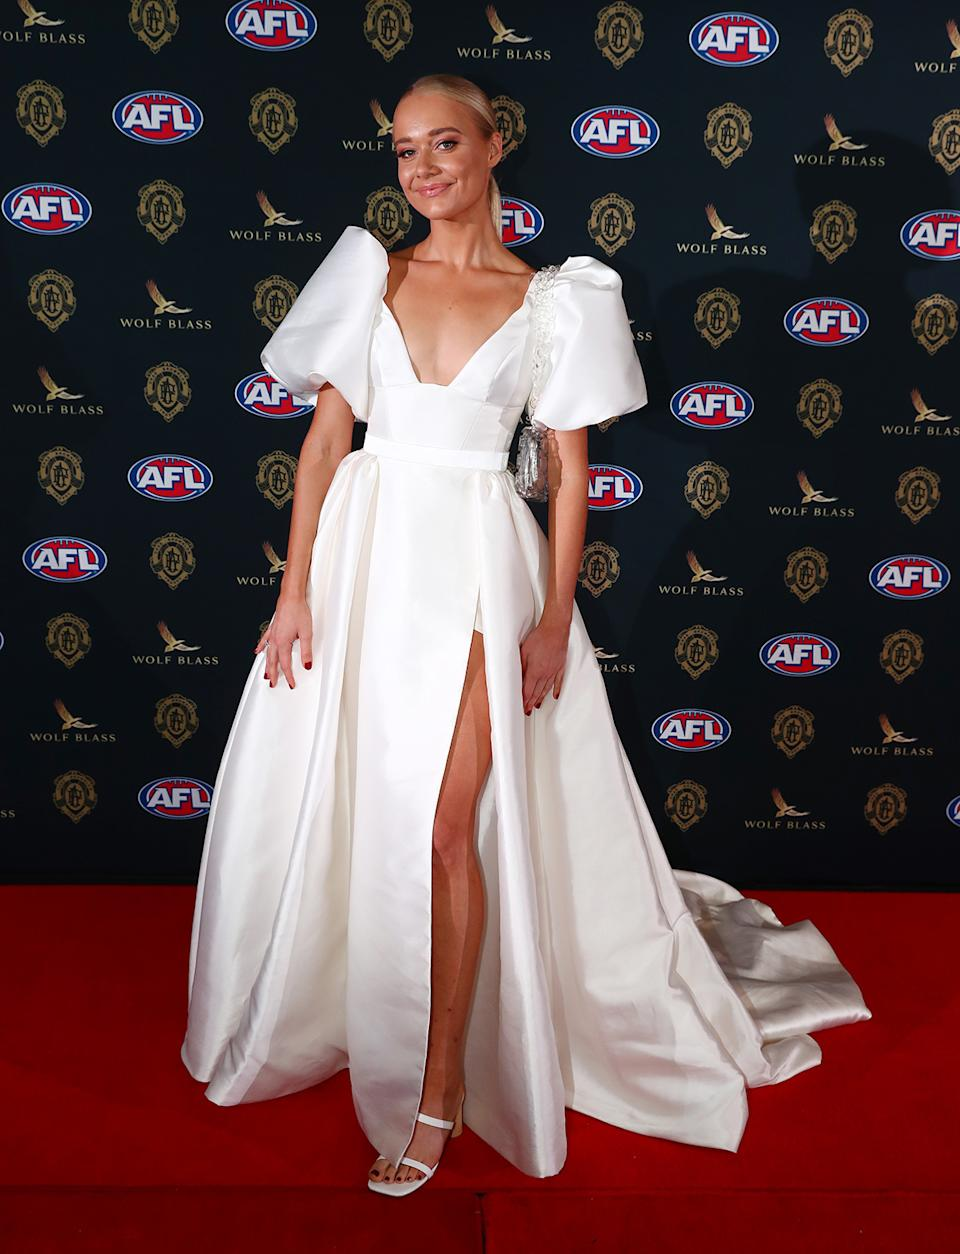 Georgia Mitchell at the Brownlow Medal Awards 2021